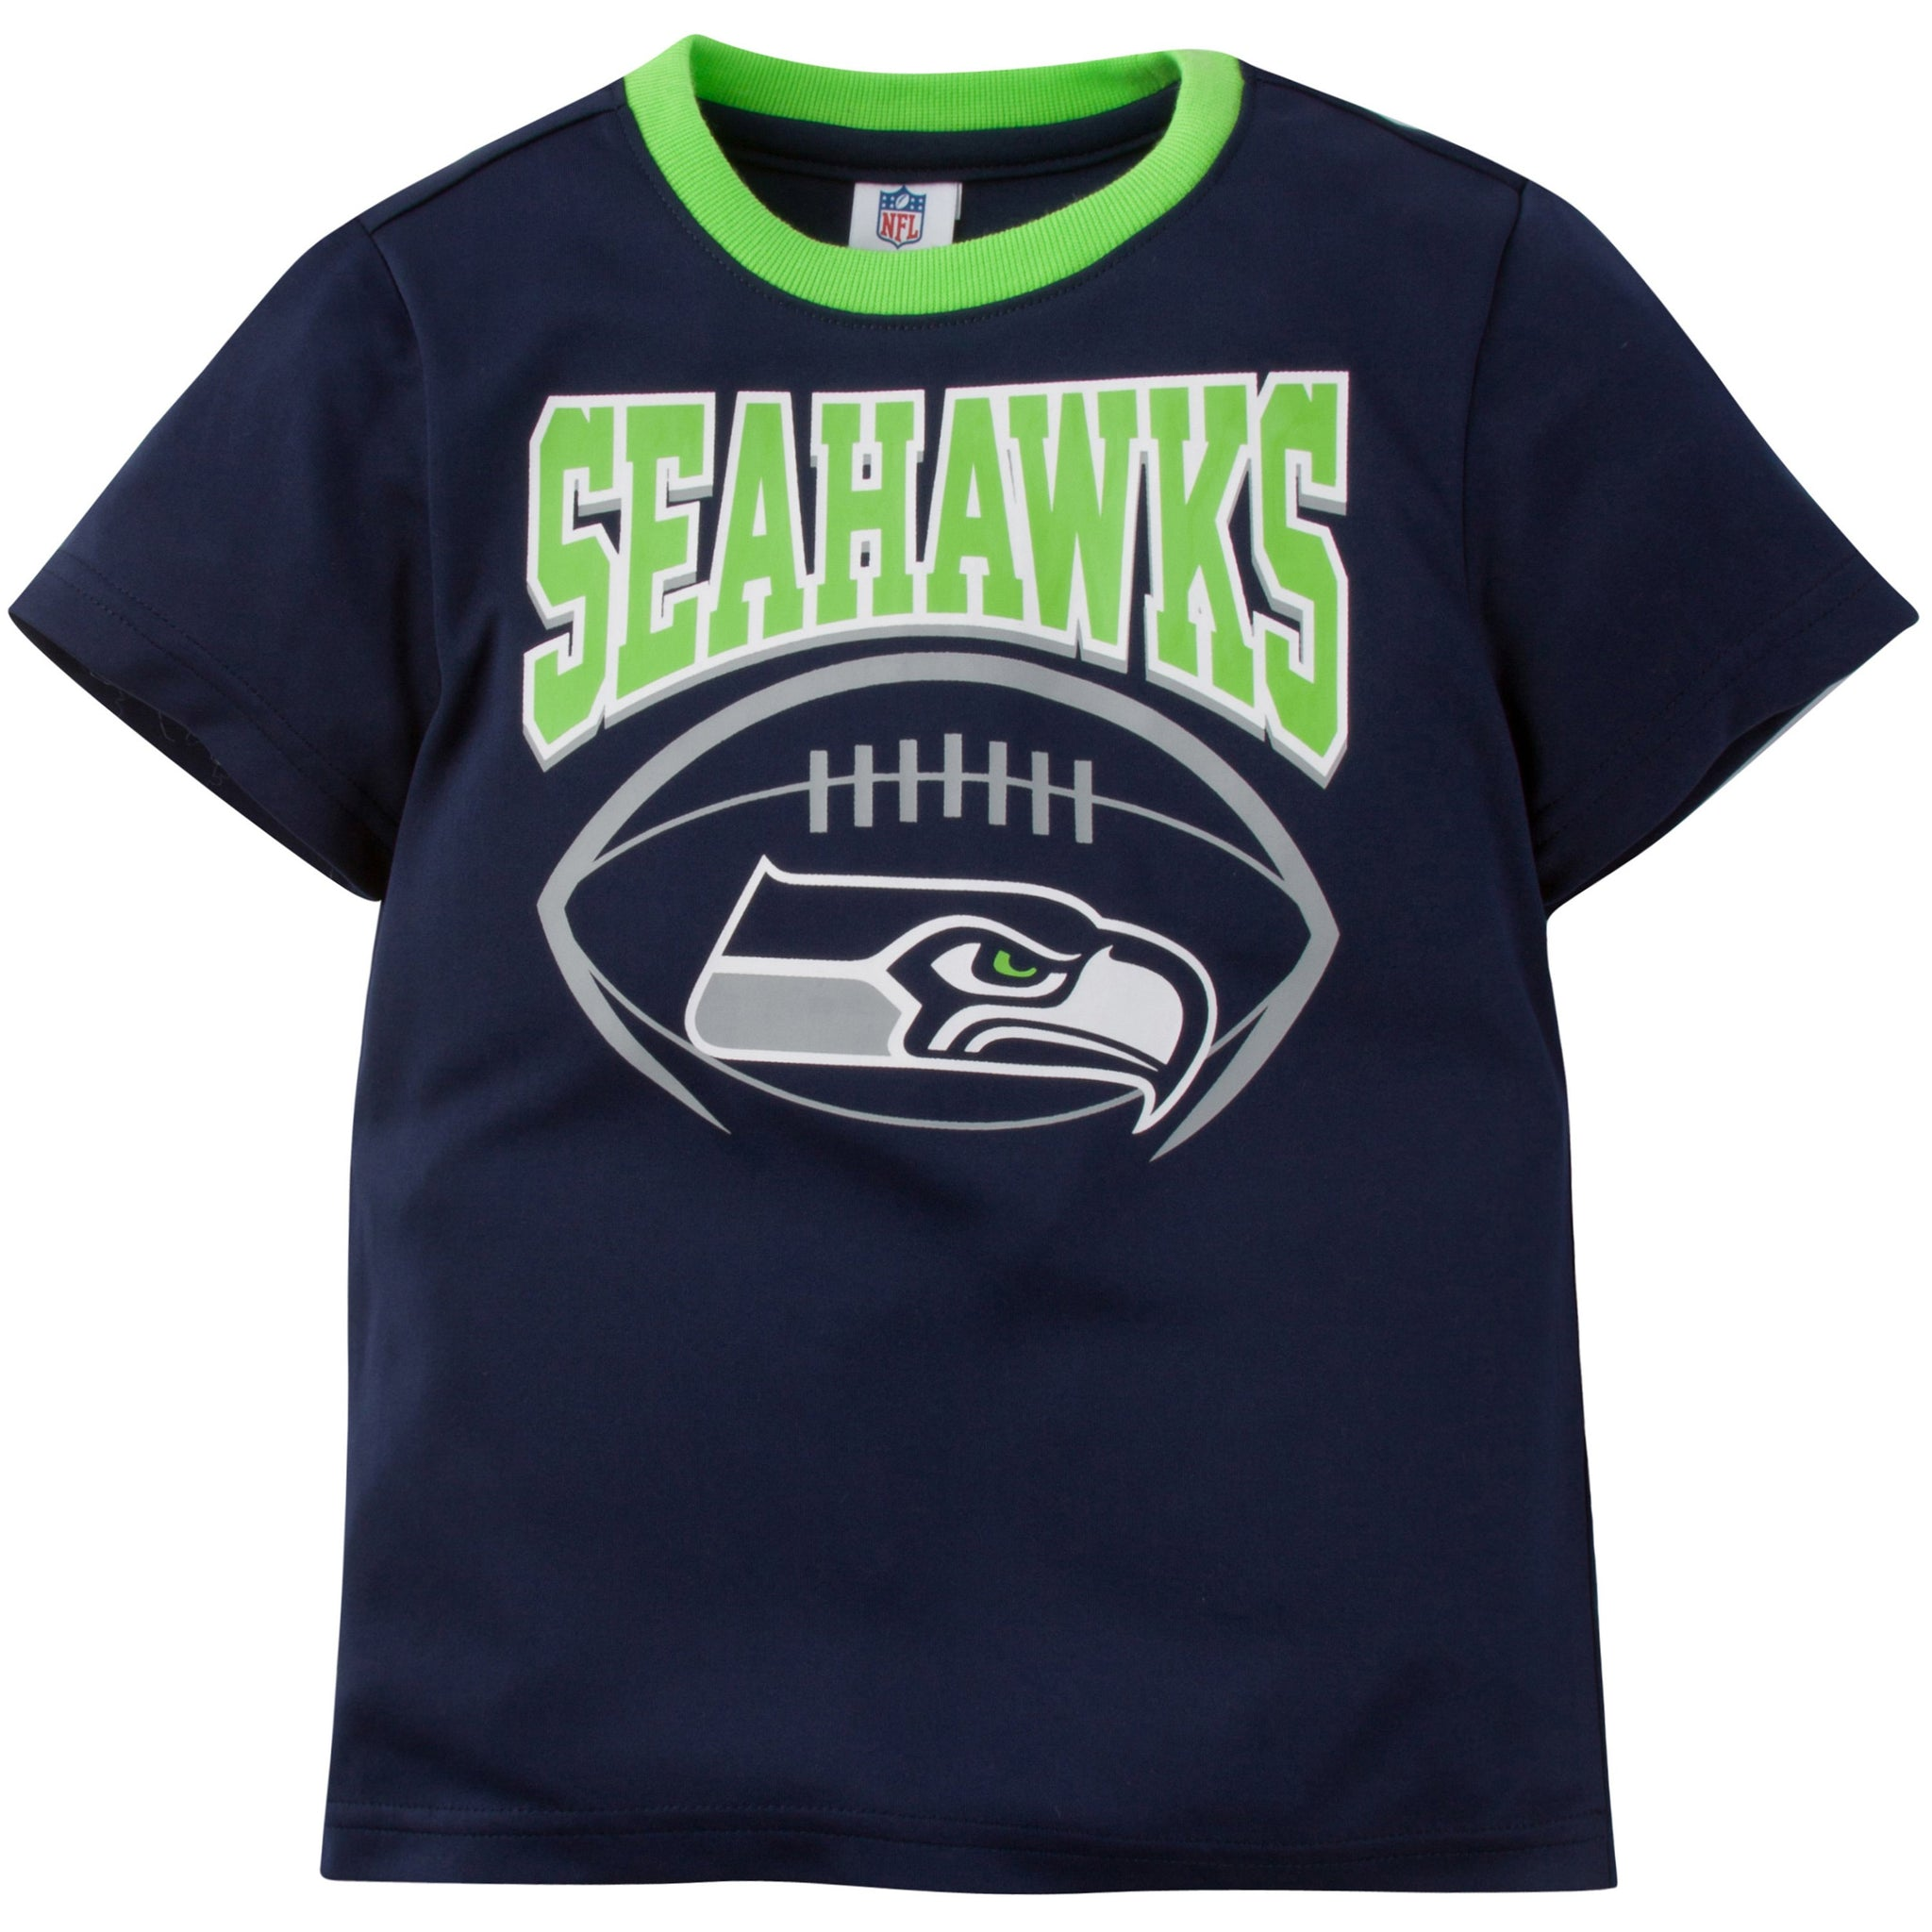 NFL Seattle Seahawks Toddler Boys Short Sleeve Performance Tee Shirt-Gerber Childrenswear